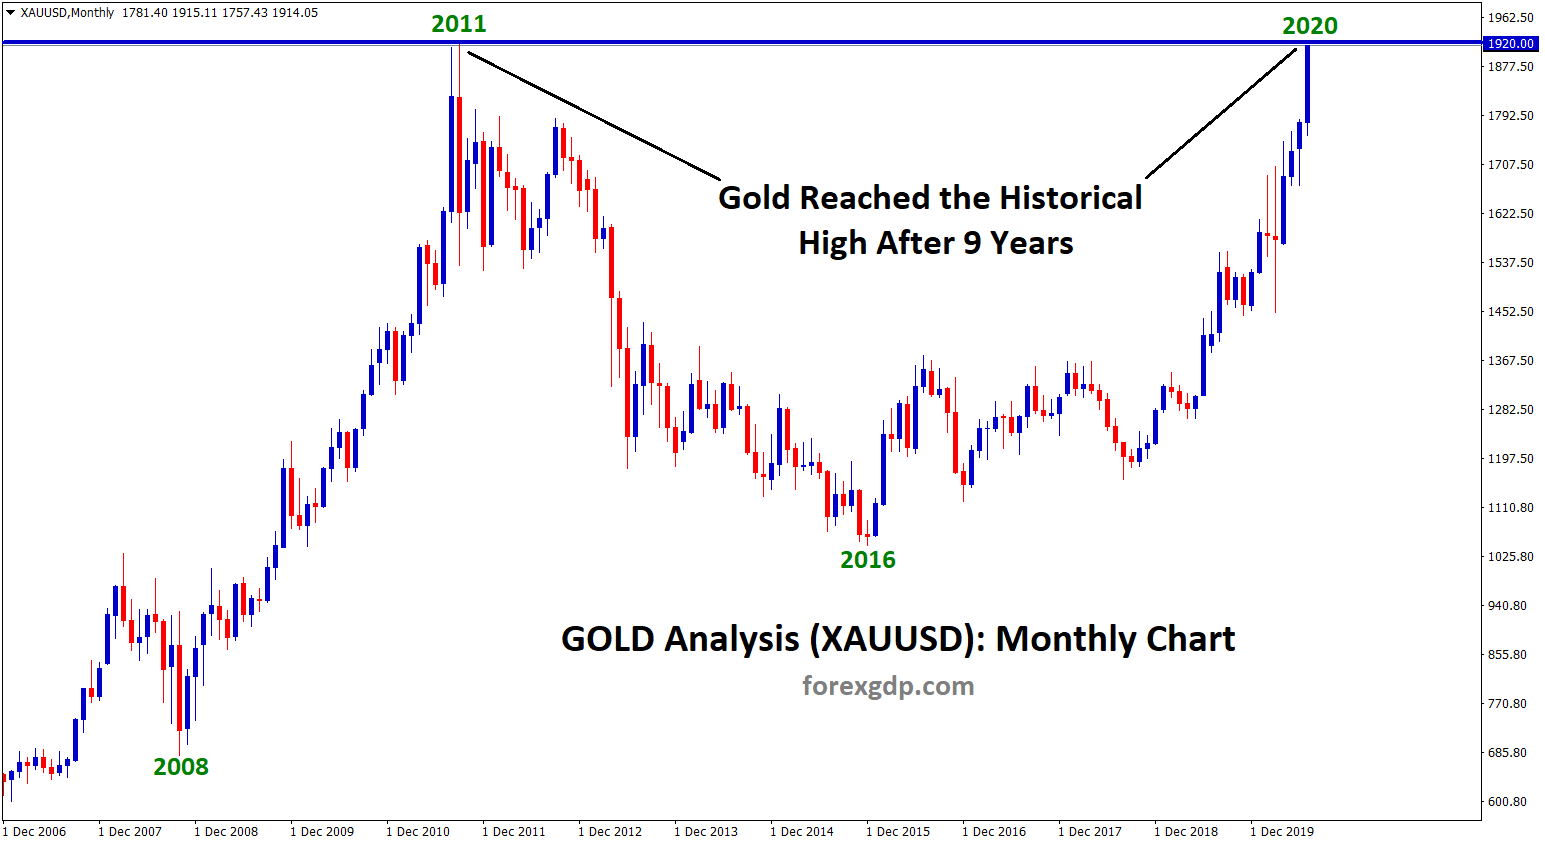 Gold touch historical high 1918